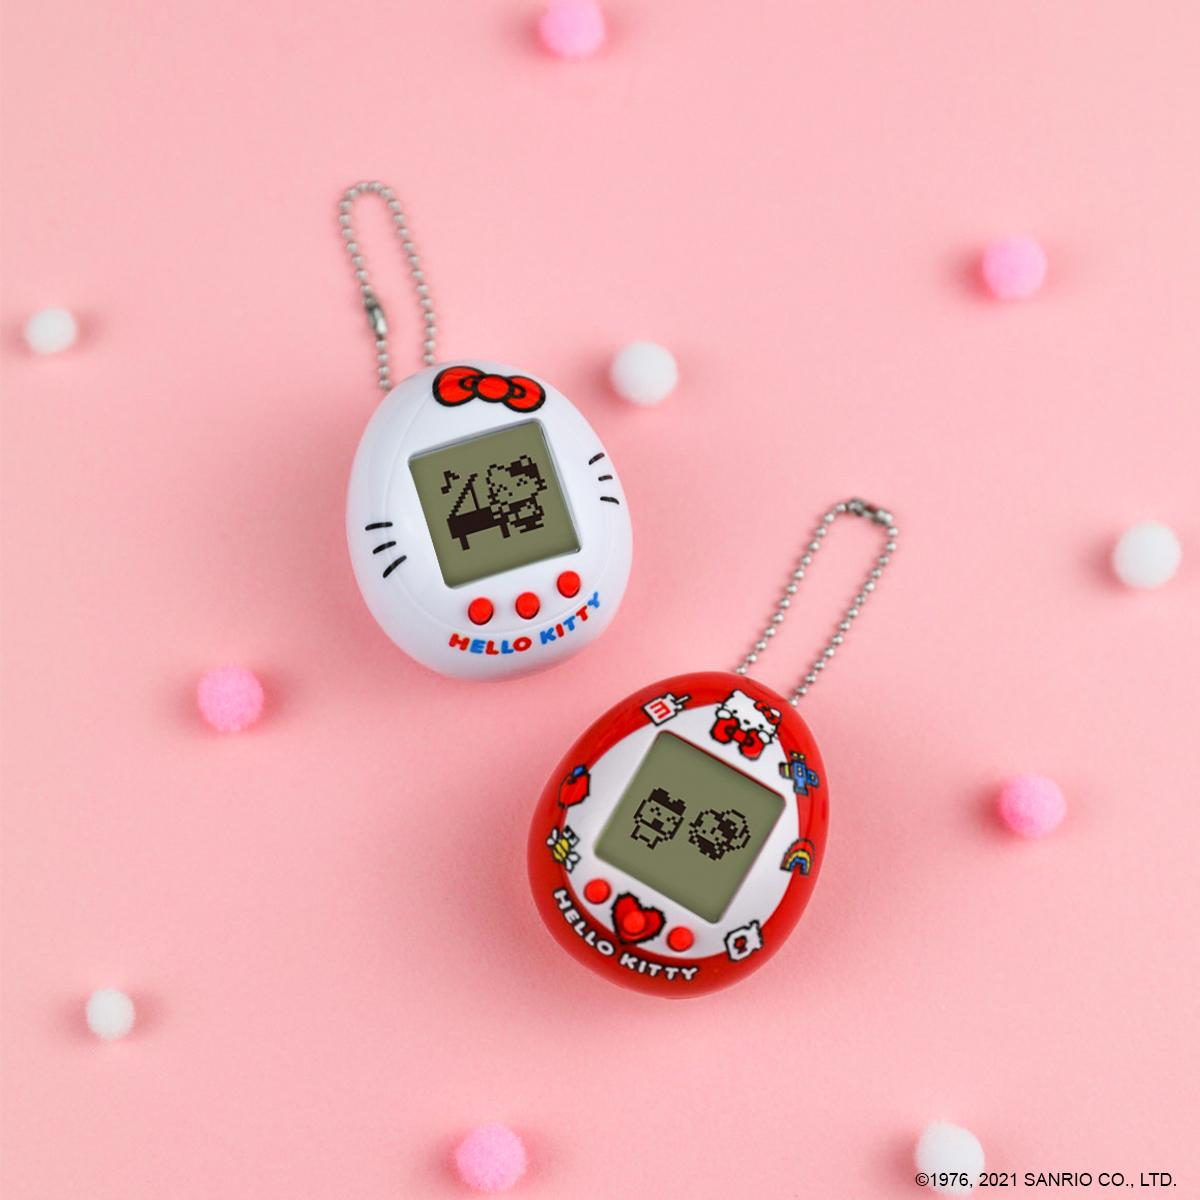 Tamagotchi, but with a supercute twist! 🎀Hello Kitty Tamagotchi is now available at @Target stores. #target